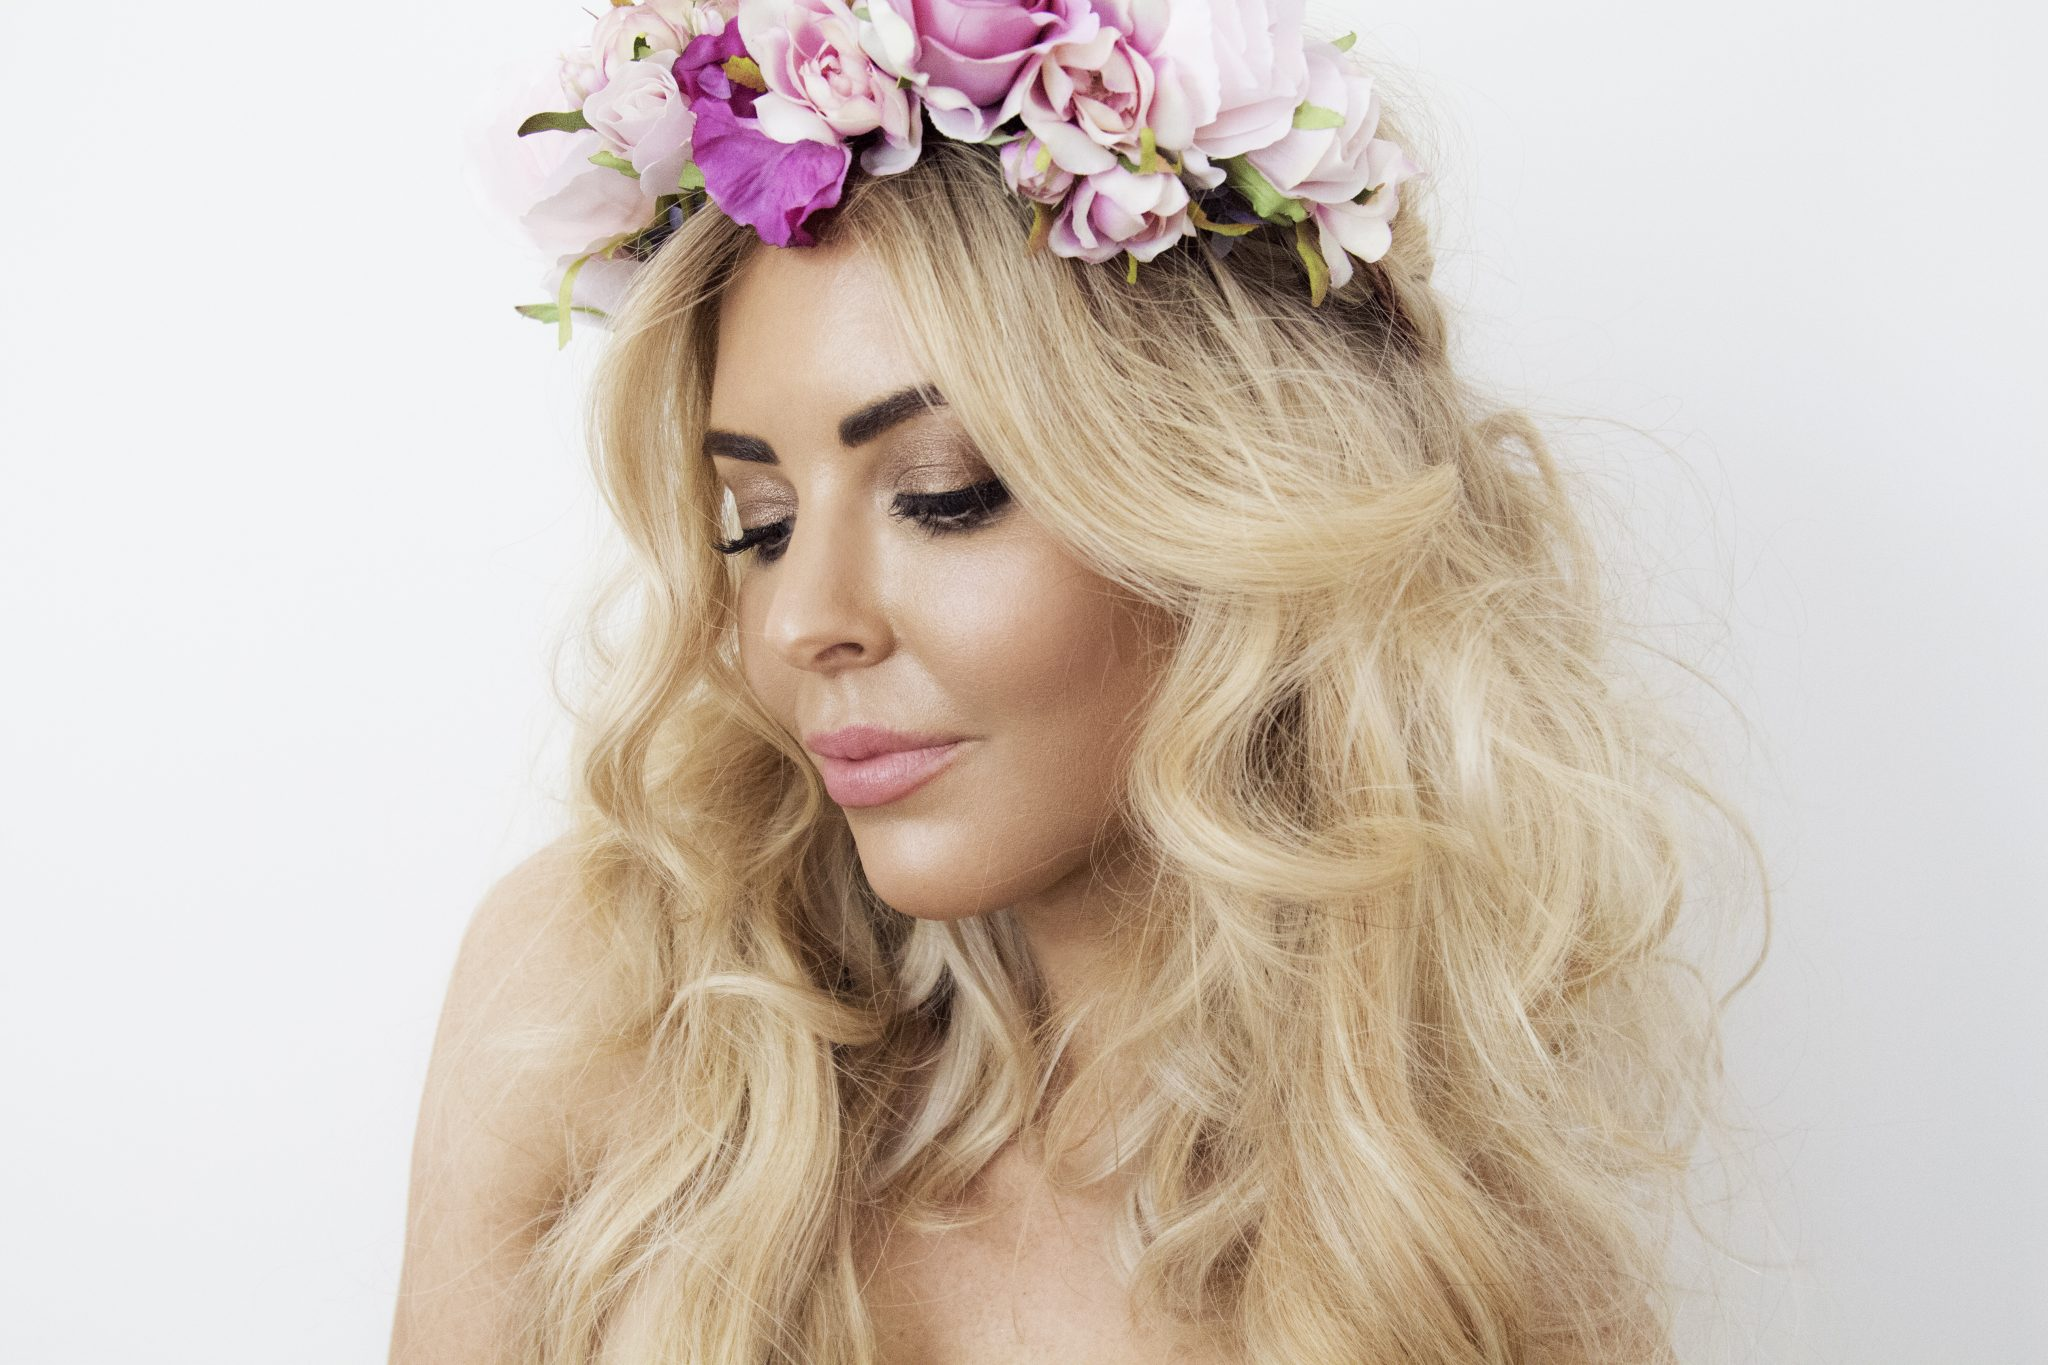 SARAH JANE YOUNG, SHEISSARAHJANE, MHAIRI MCQUEEN, KOH ELWOOD, BOHO HAIR, BLONDE HAIR, BOHO HAIR HOW-TO, FESTIVAL HAIR, BEACH WAVES, BEAUTY BLOGGER, MELBOURNE BEAUTY BLOGGER, ZOE KARLIS MAKE-UP